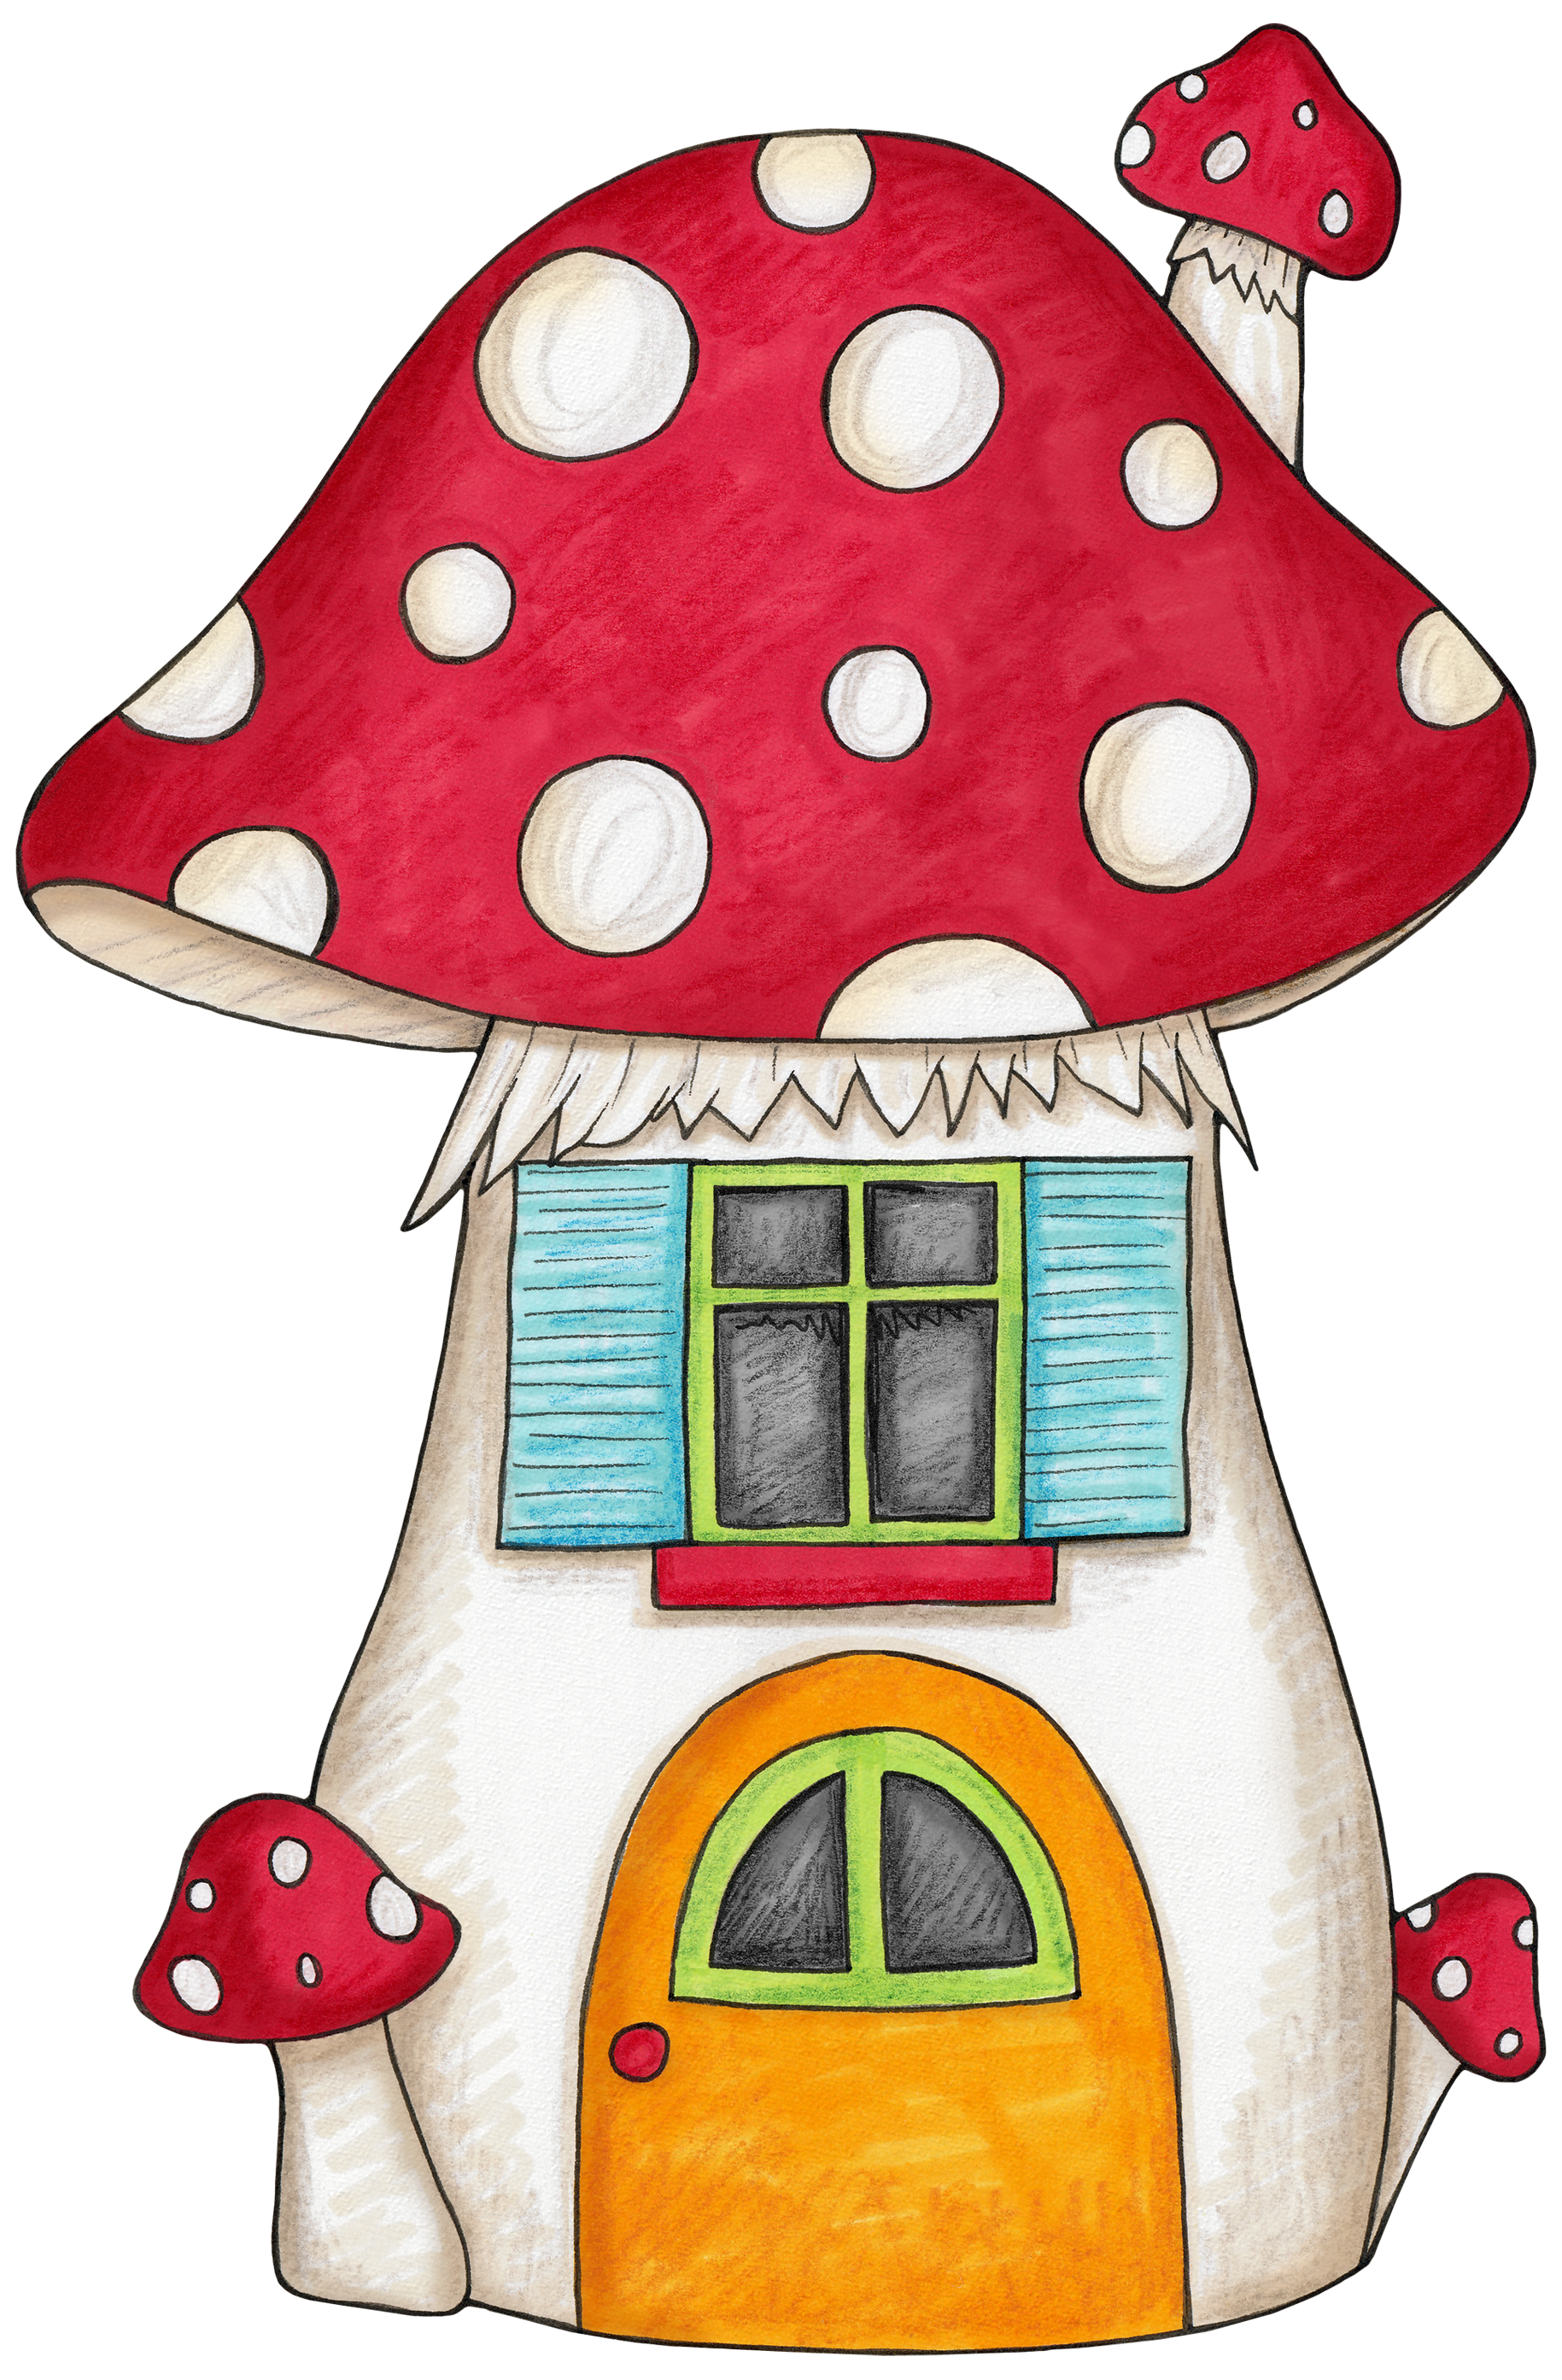 Woodland clipart woodland character. Mushroom house for an